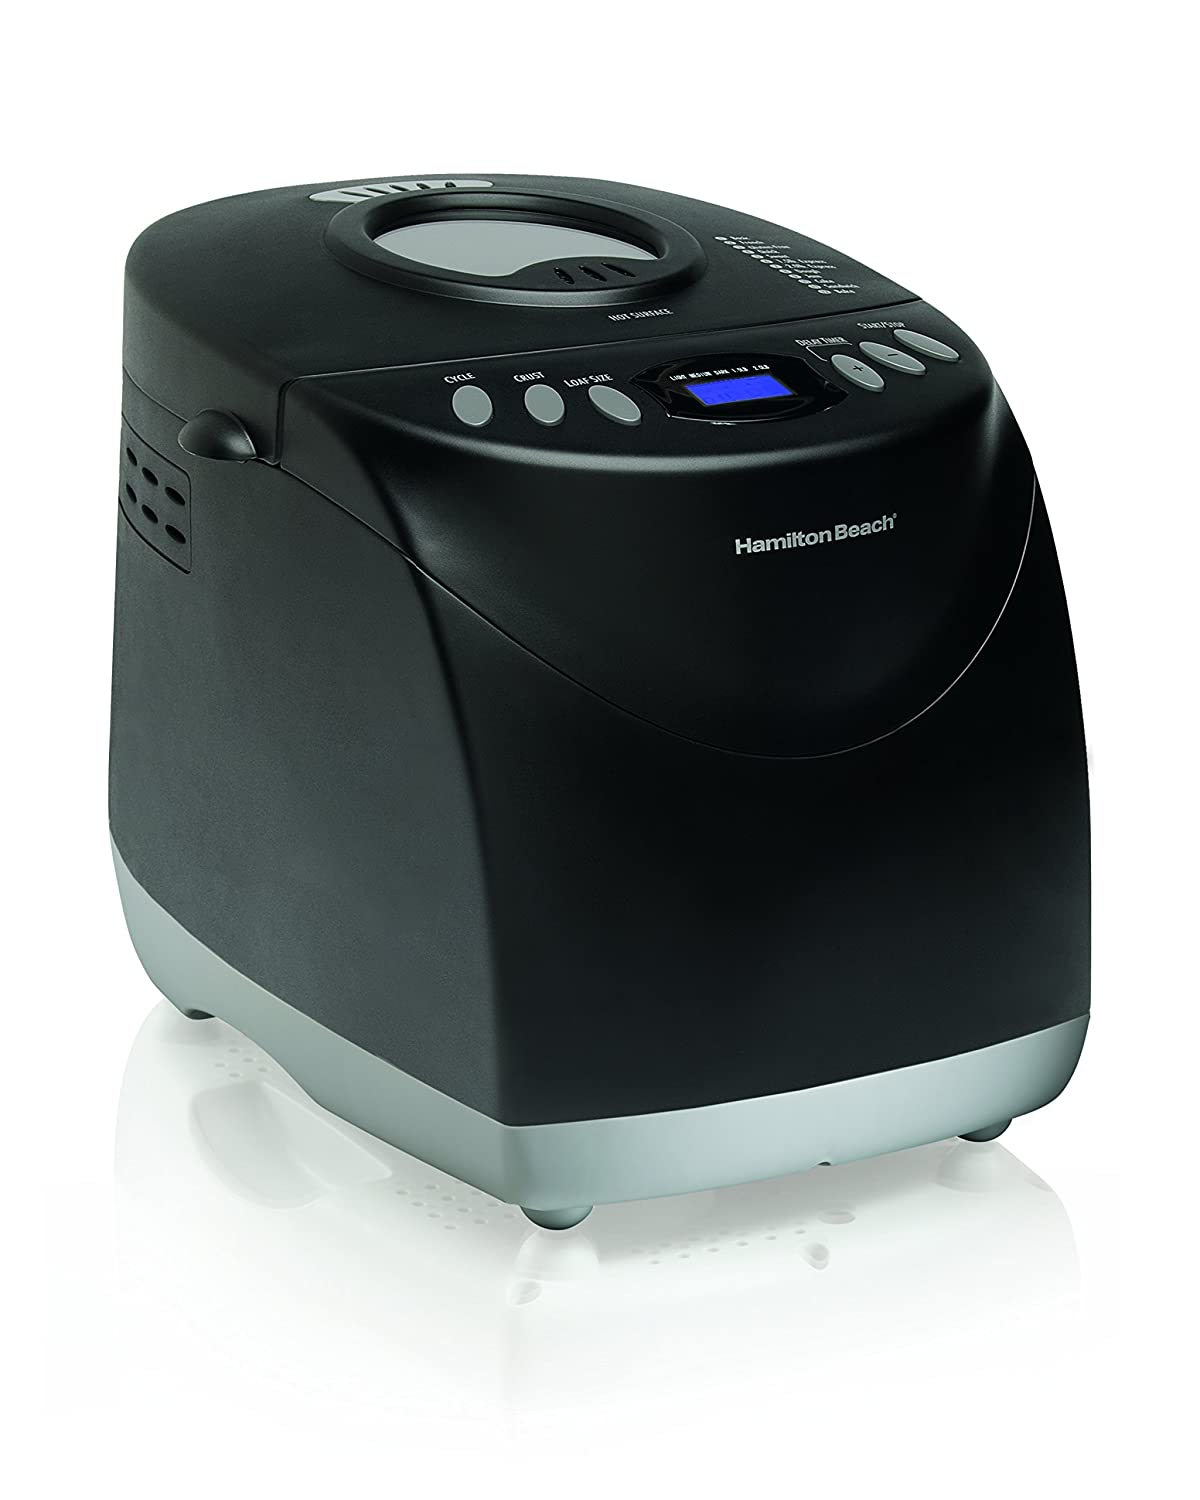 Hamilton Beach (29882C) HomeBaker 2 Lb. Bread Maker Machine with 12 Program Cycles, Non-Stick Dishwasher-Safe Pan and 2 Kneading Paddles, Black